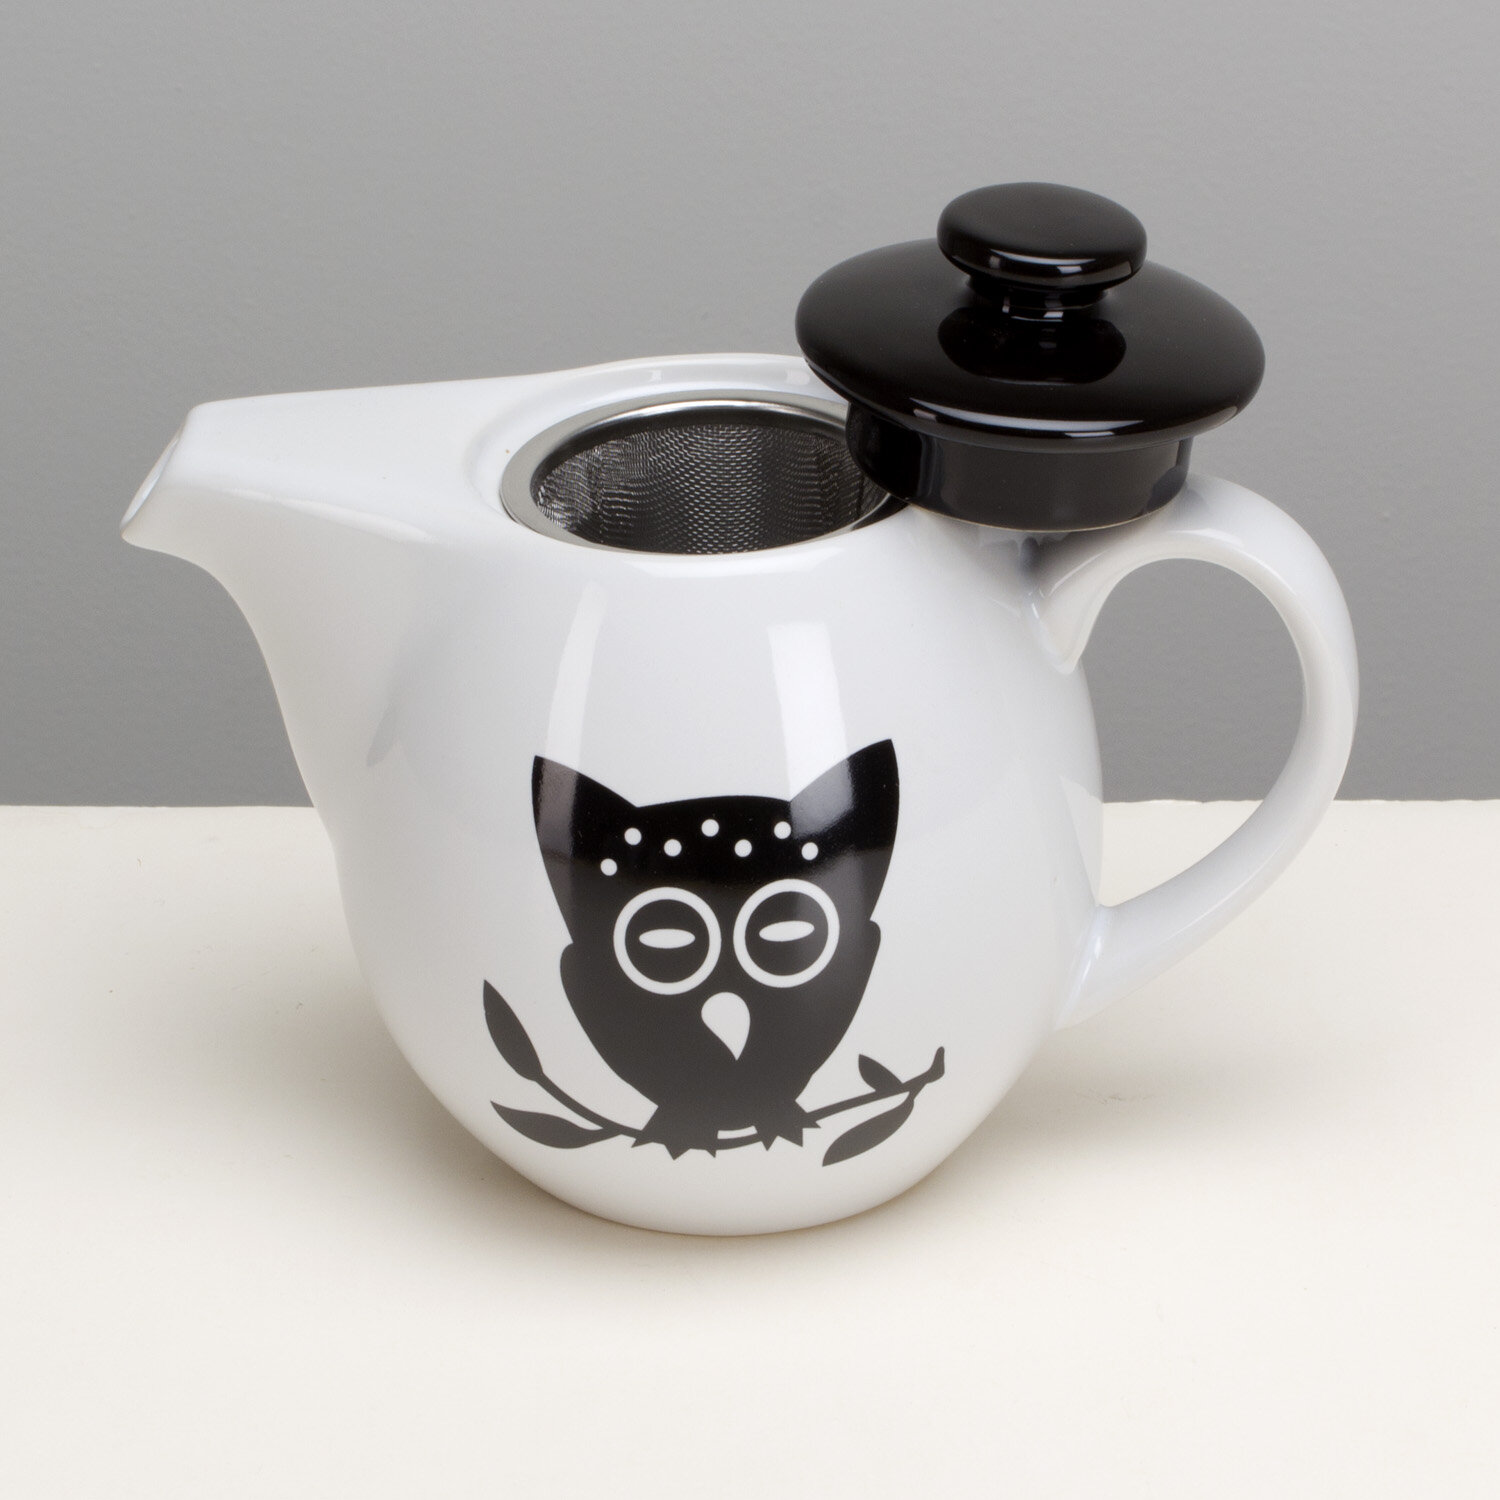 Omniware Night Owl Stoneware Teapot | Wayfair